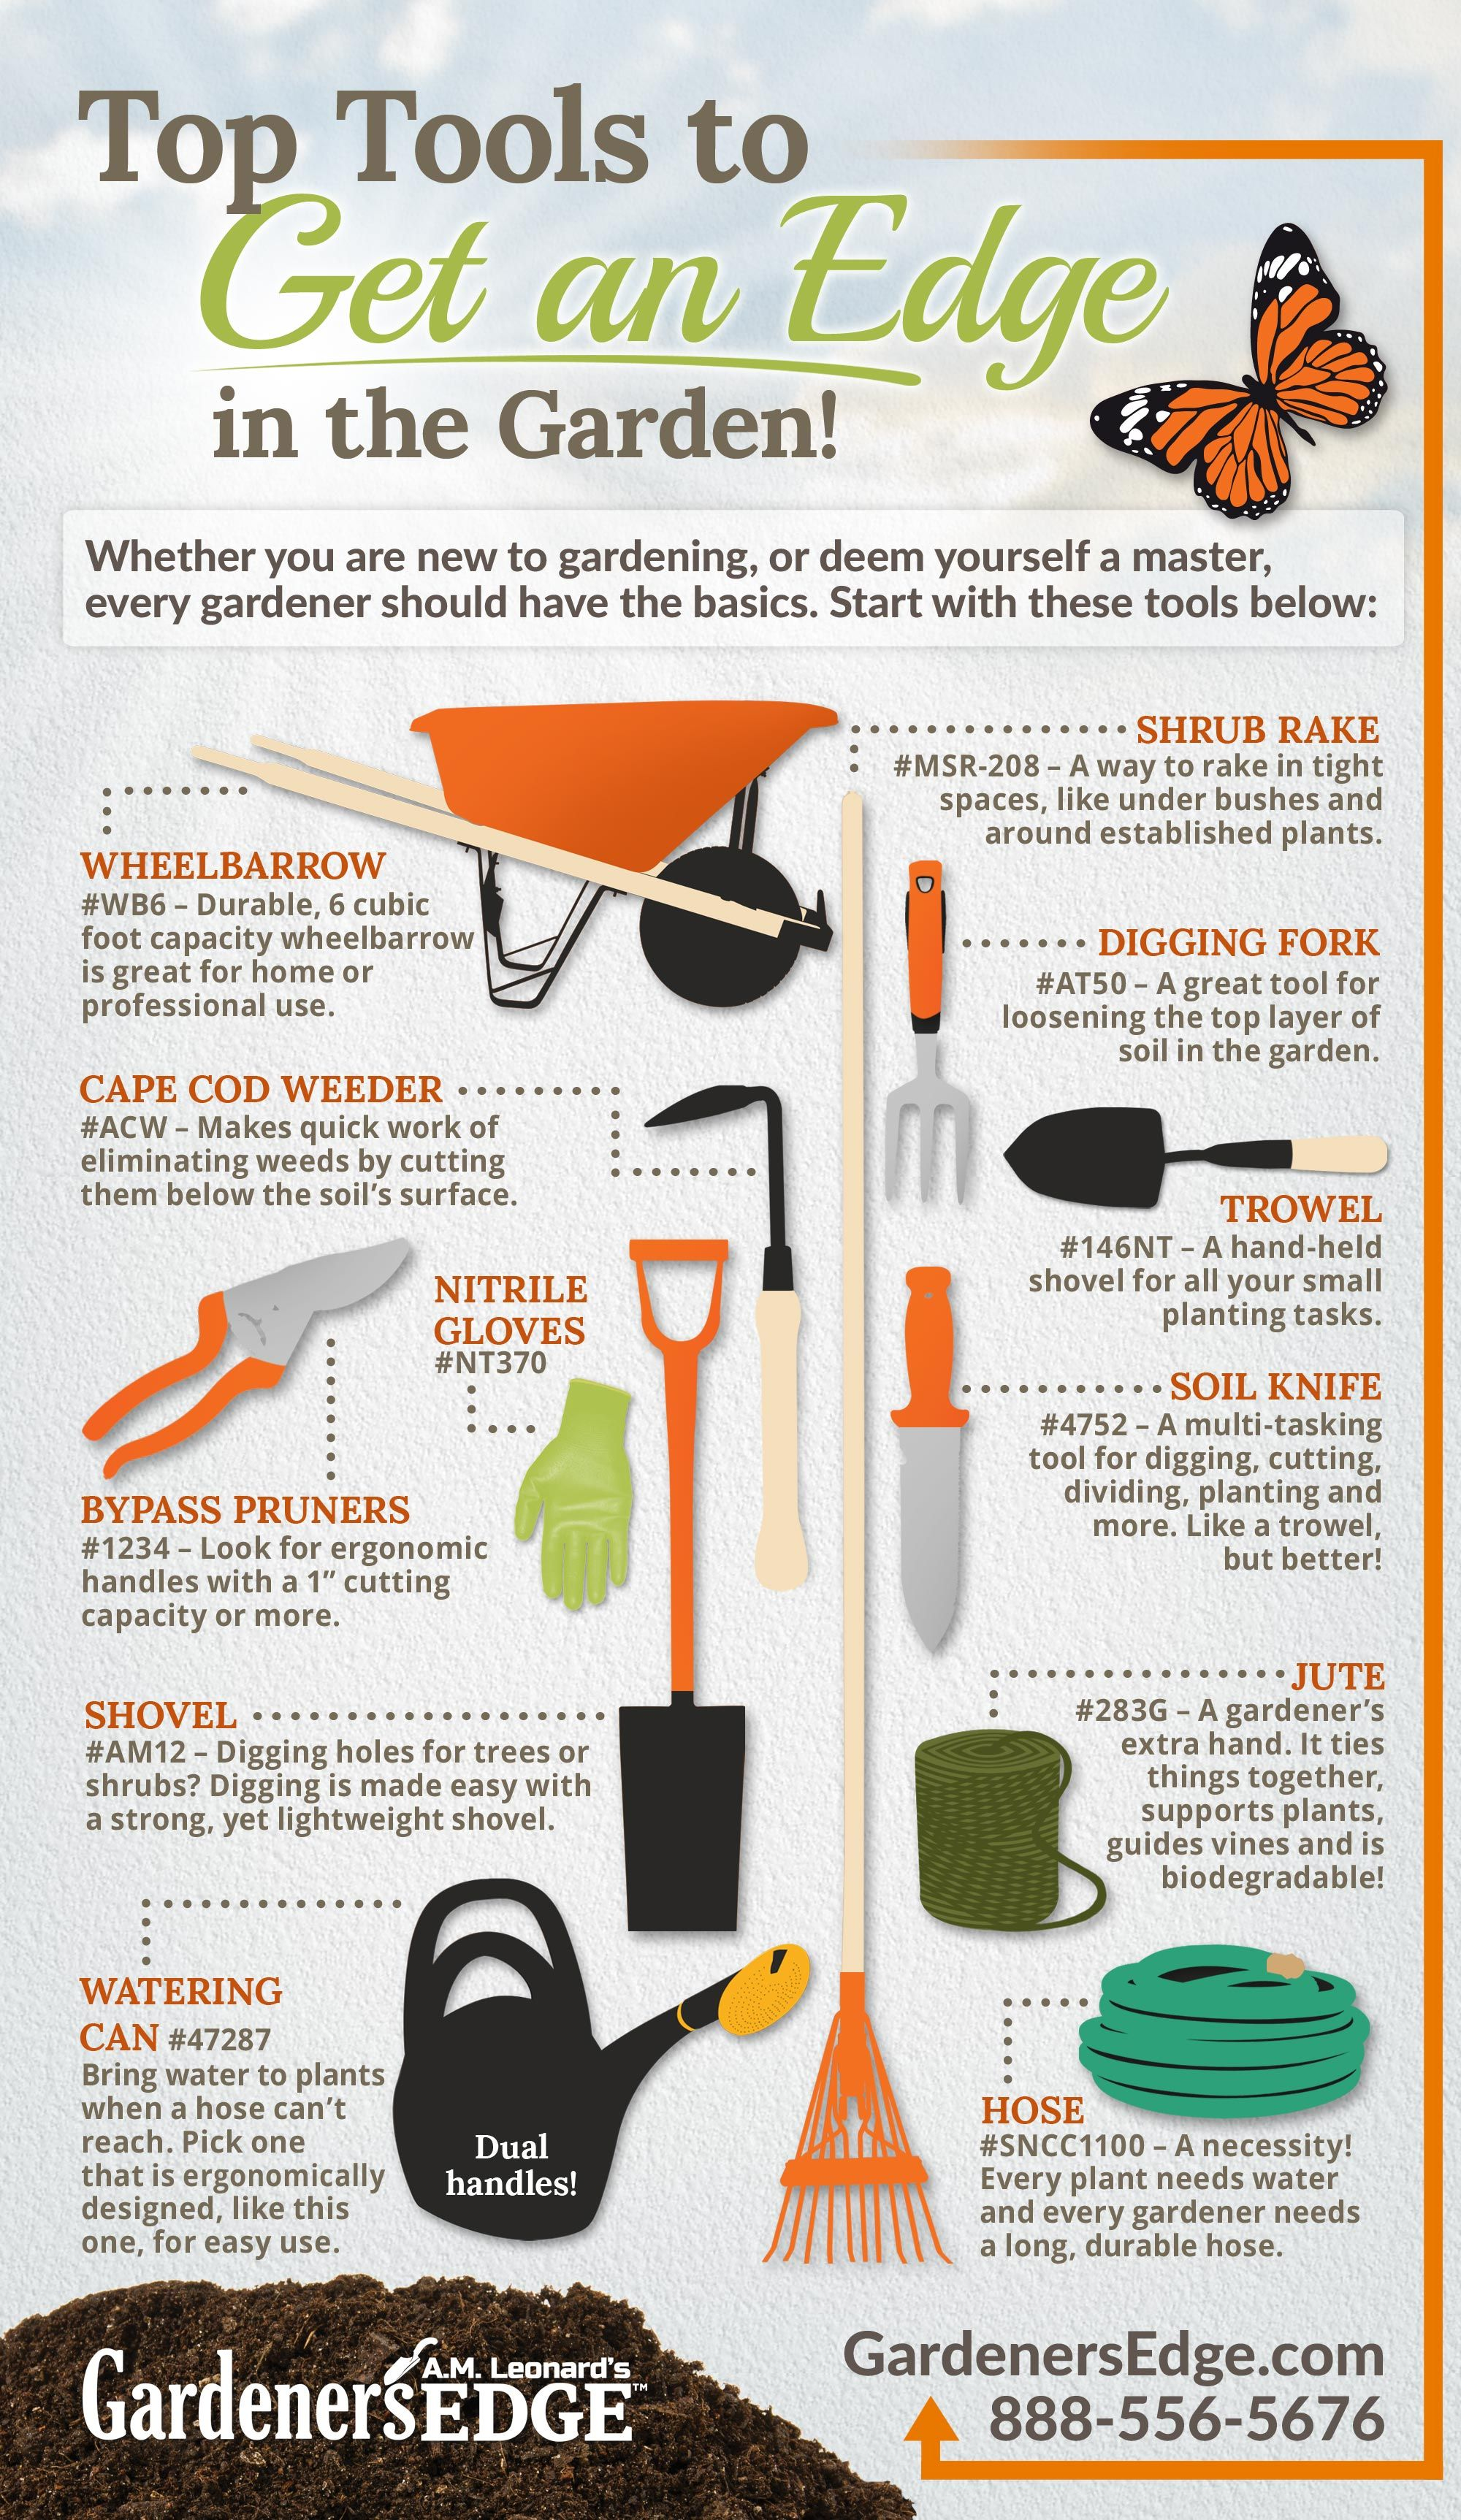 Best Gardening Tools: Top Tools to Get an Edge in the Garden this Spring! [Must-Have Garden Tools!] Durable wheelbarrow, Cape Cod Weeder, nitrile gloves, bypass pruners, garden spade, watering can, narrow shrub rake, digging fork, trowel, Soil Knife (Hori Hori Knife), jute garden string, and a reliable hose!  |  GardenersEdge.com #gardeningtools